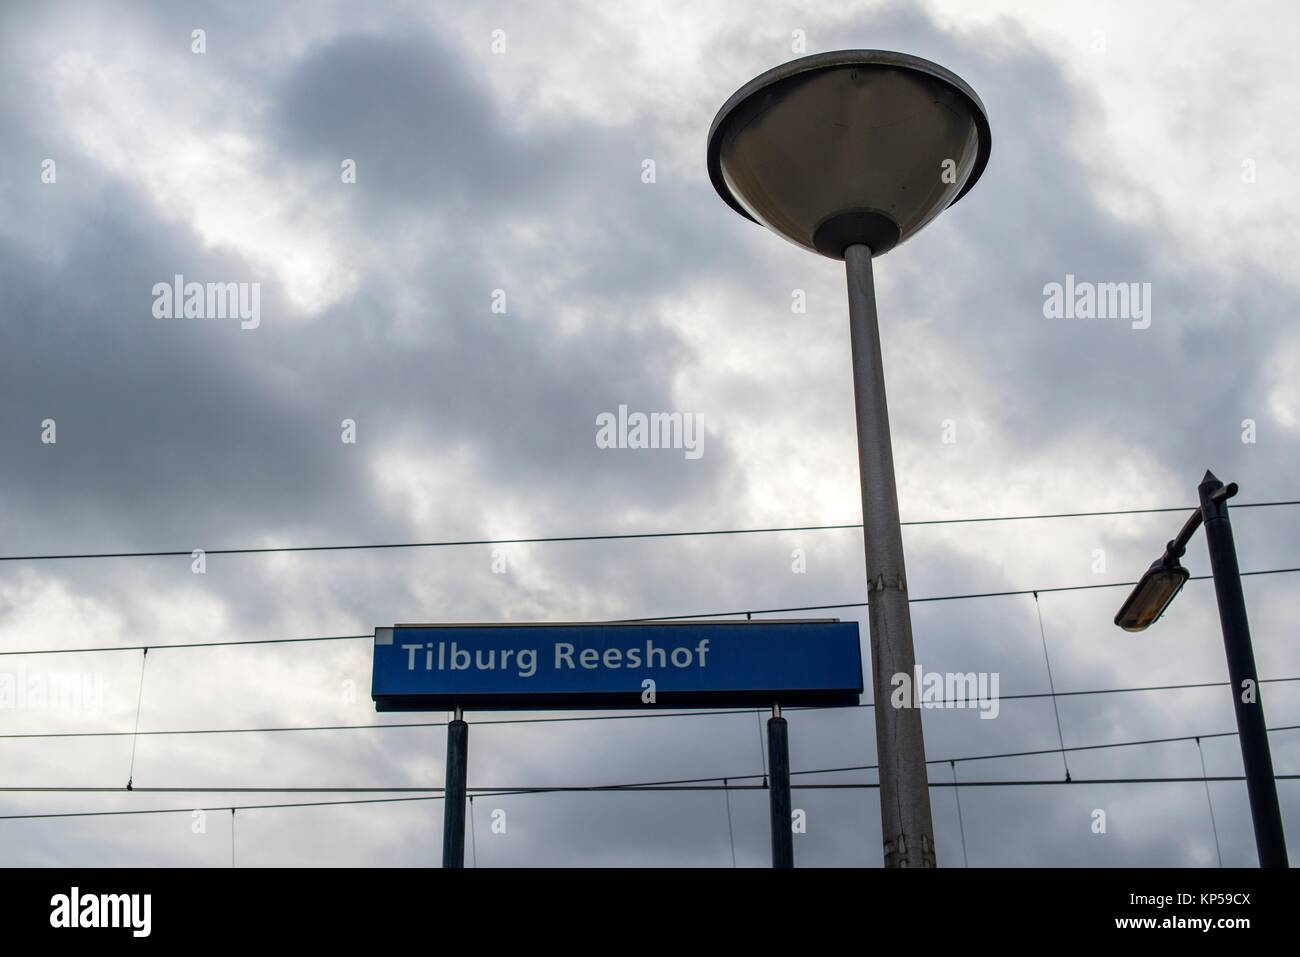 Tilburg, Netherlands. Namesign, streetlight and catenary at Tilburg-Reeshof railway station. Stock Photo